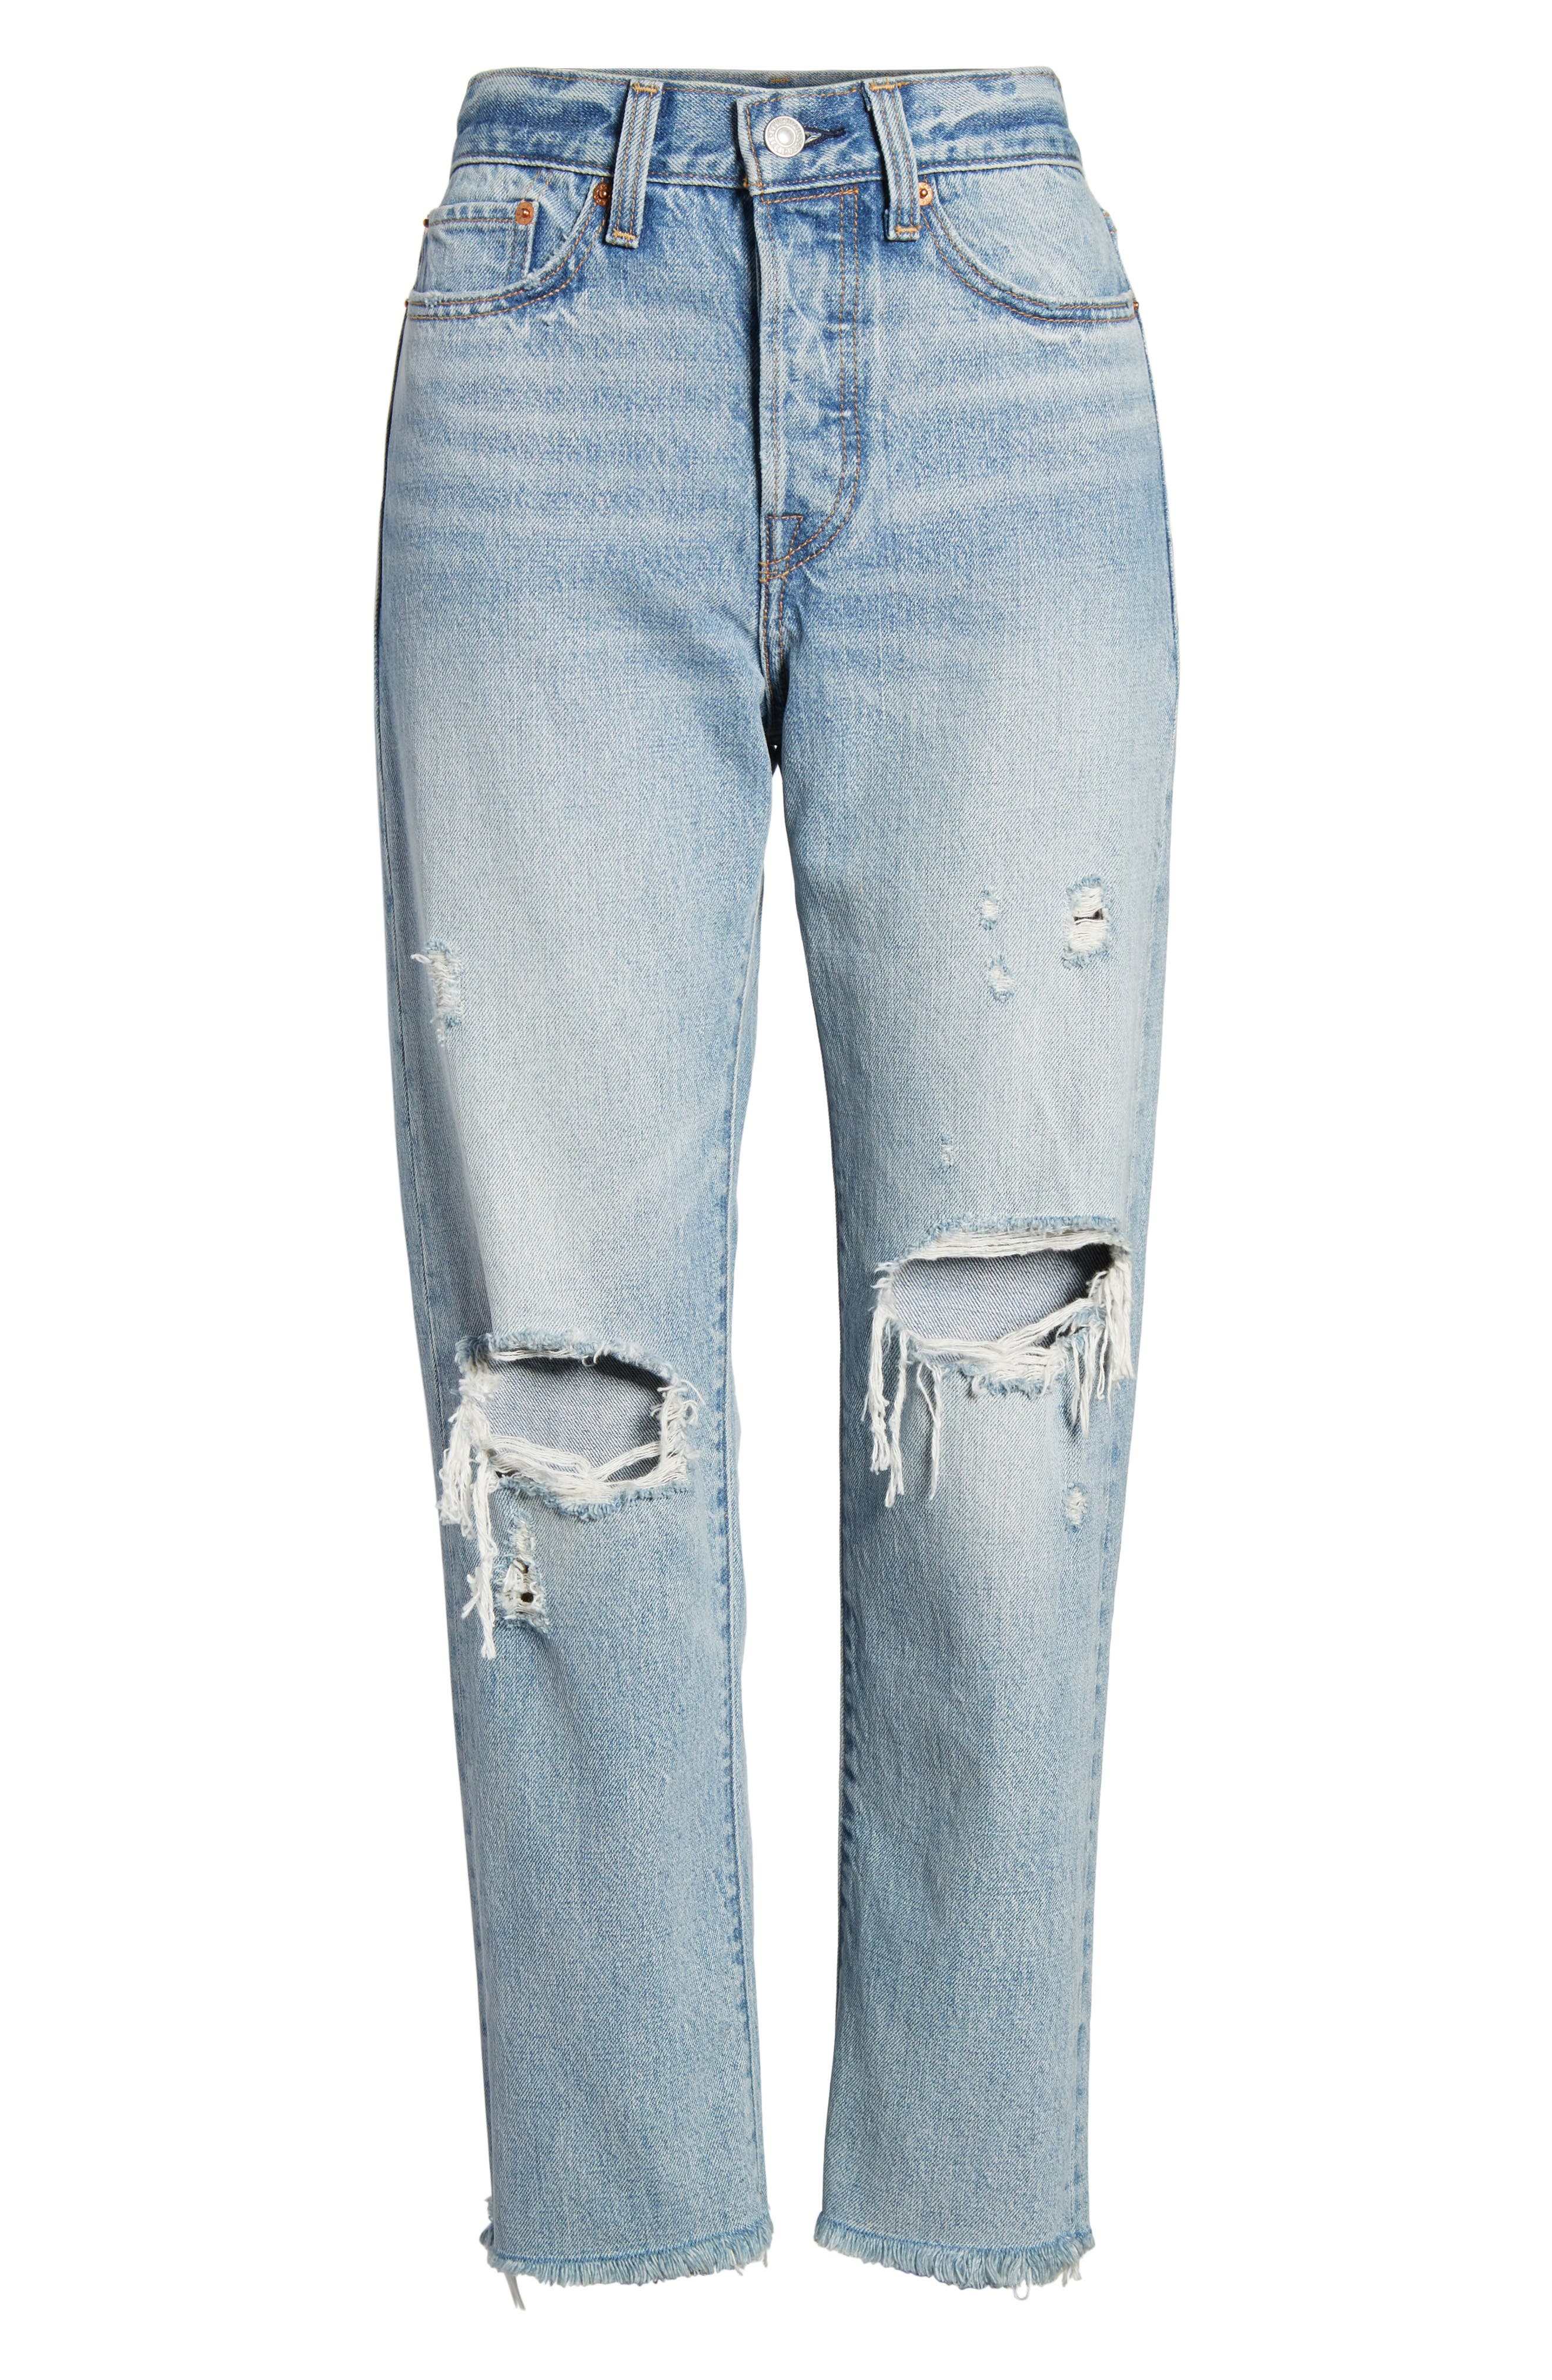 Wedgie High Waist Straight Jeans,                             Alternate thumbnail 7, color,                             420